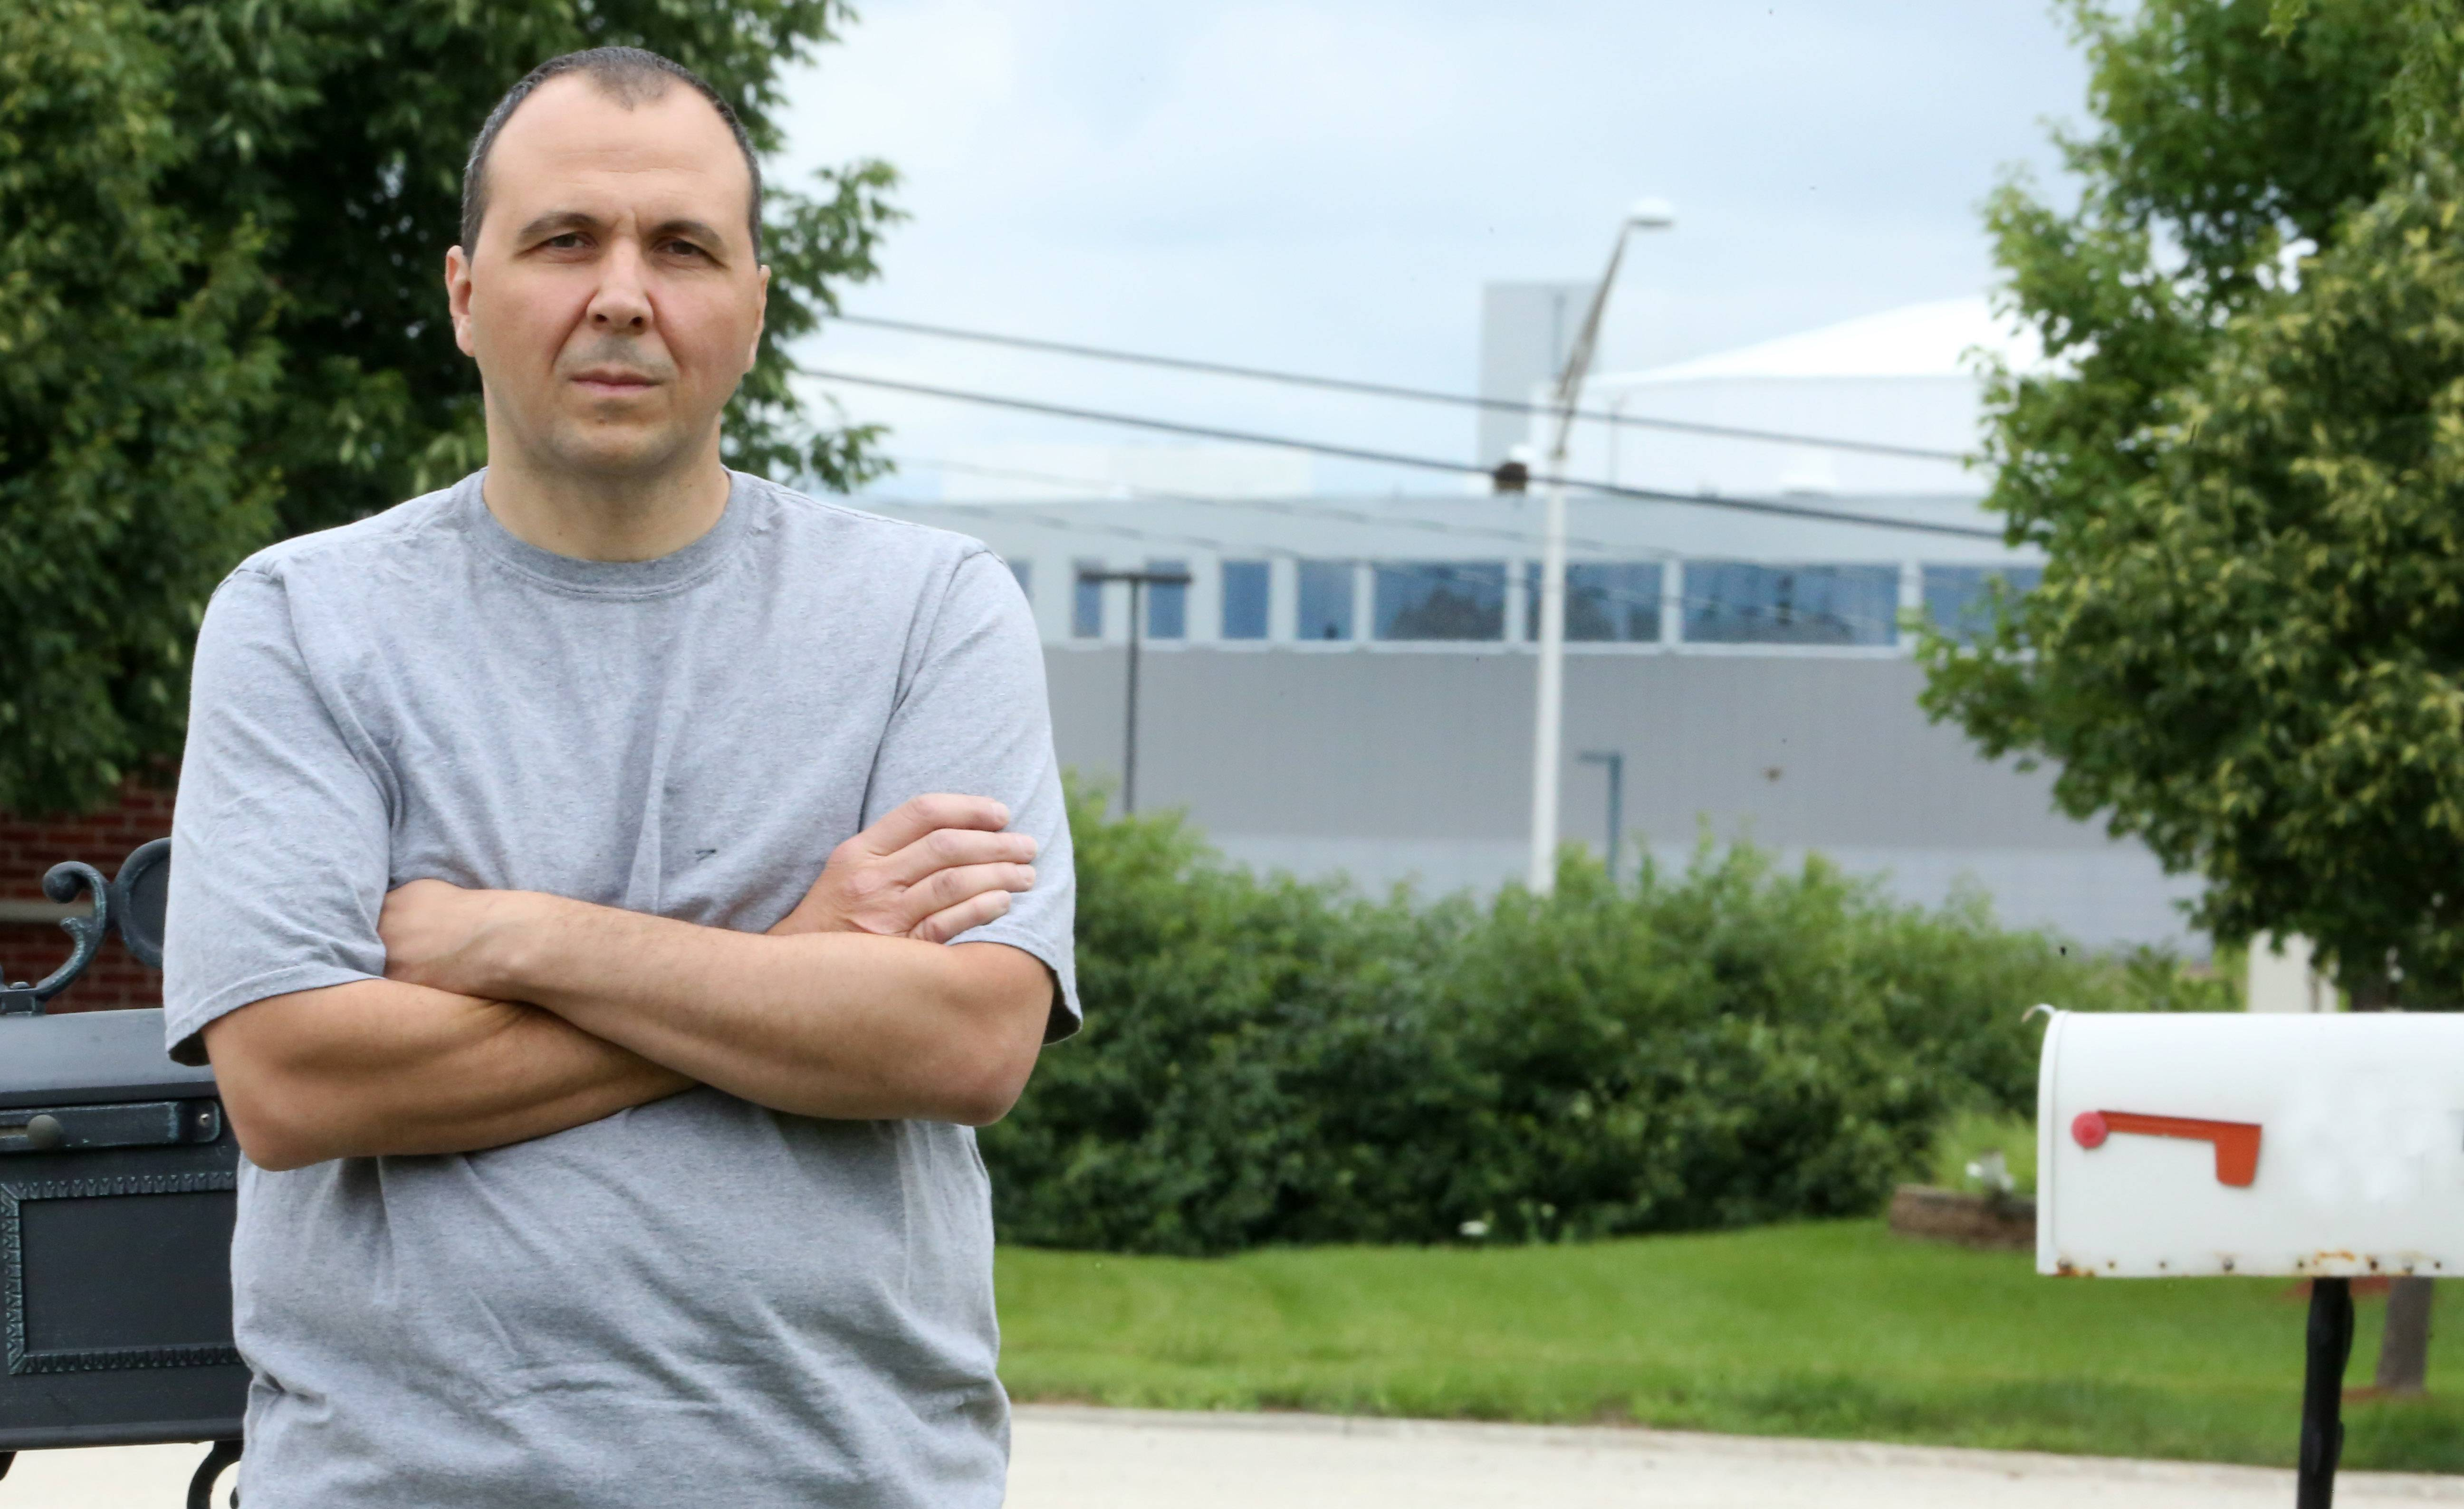 John Manfredi of Hoffman Estates stands next to his home mailbox with the Sears Centre Arena, across the tollway, in the background. Manfredi and his neighbors say long-running car racing events in the Sears Centre parking lot are too noisy.